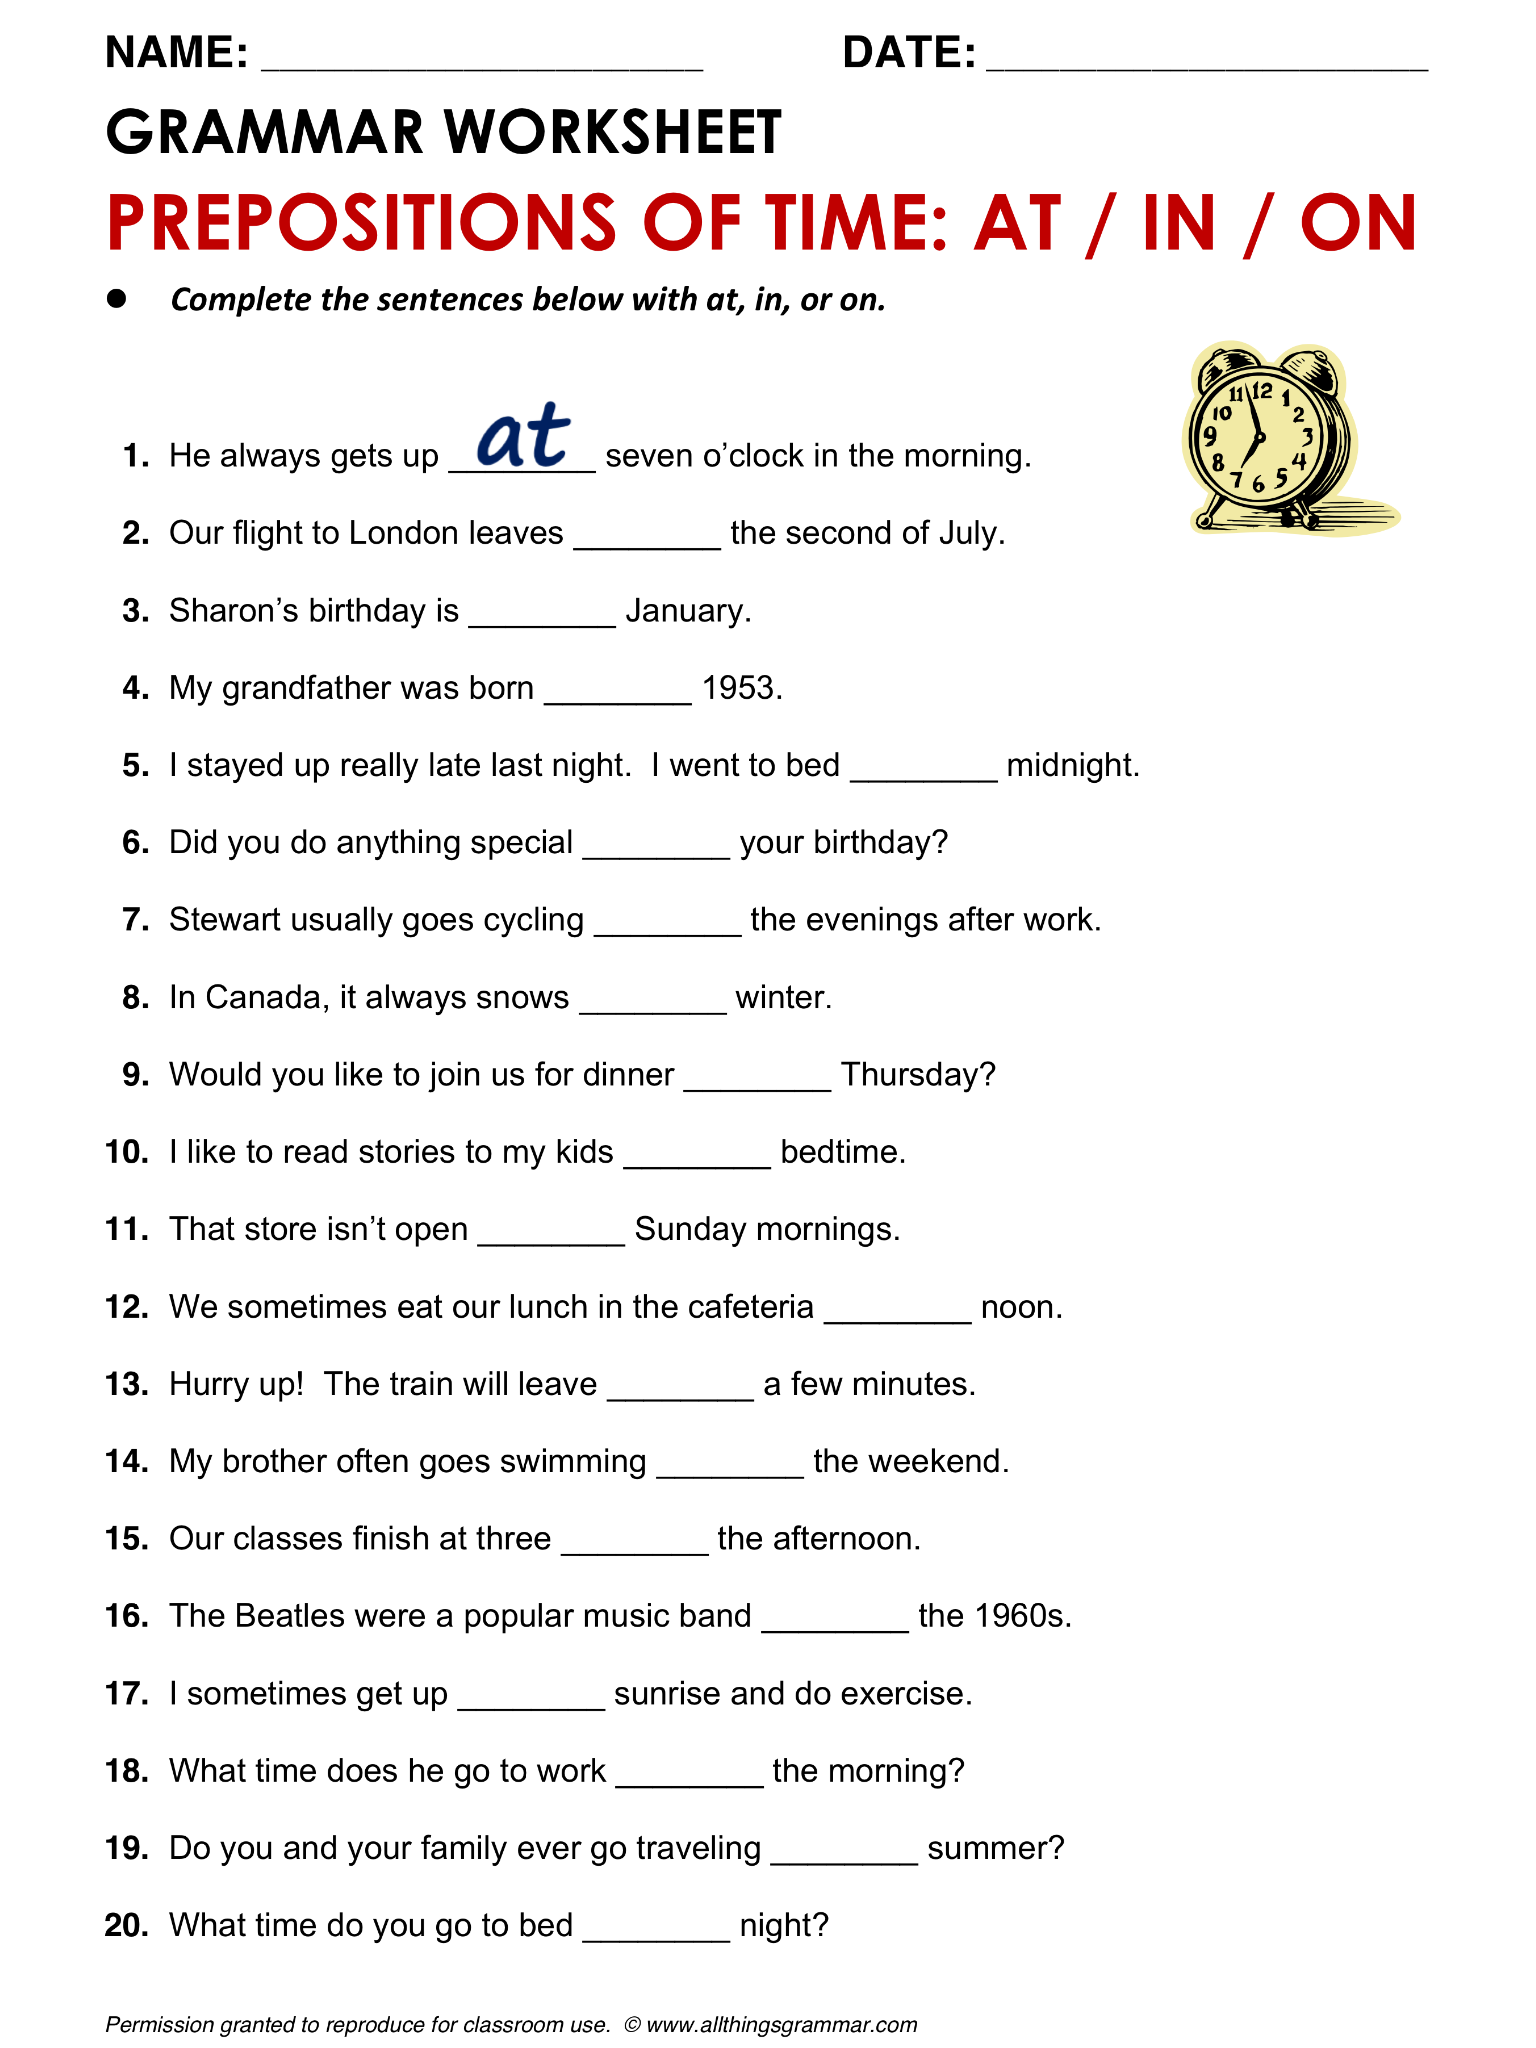 English Grammar Prepositions Of Time At In On Lthingsgrammar Time At In On